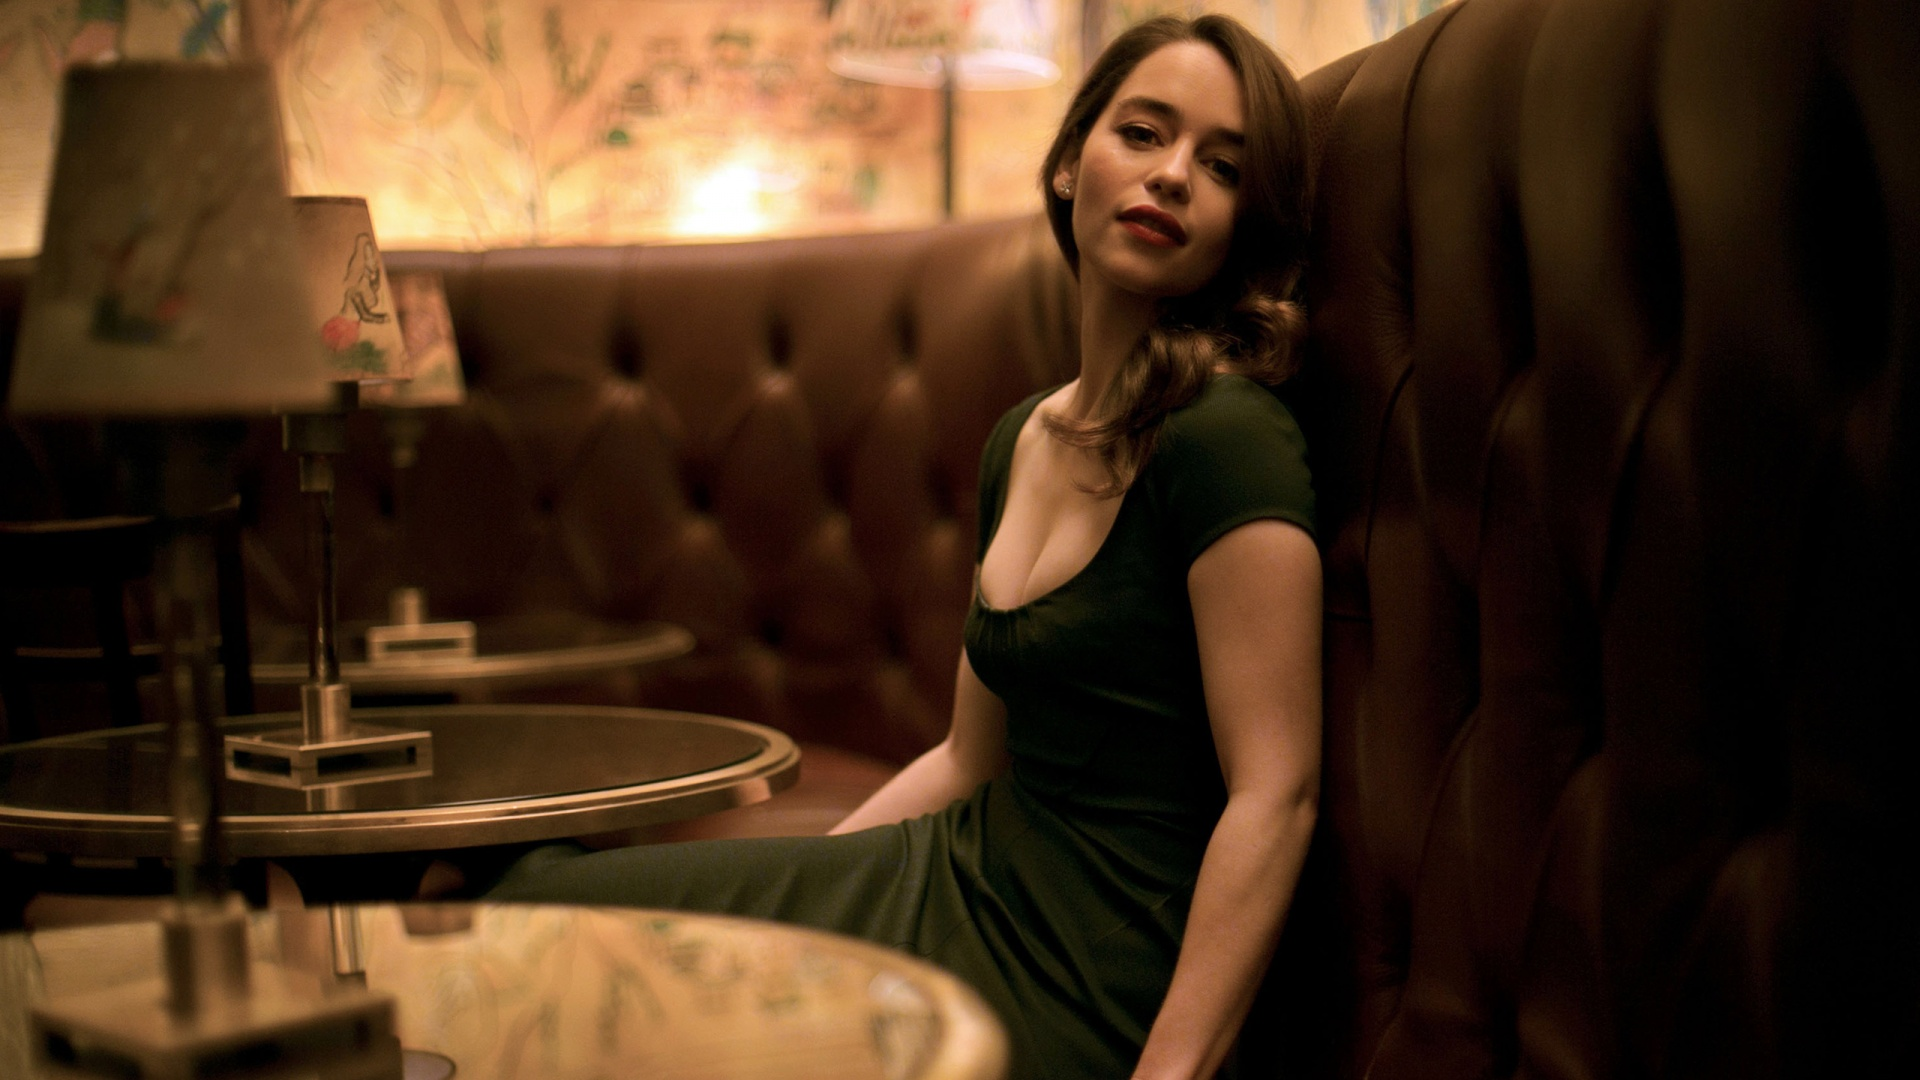 emilia clarke wallpapers hd A5